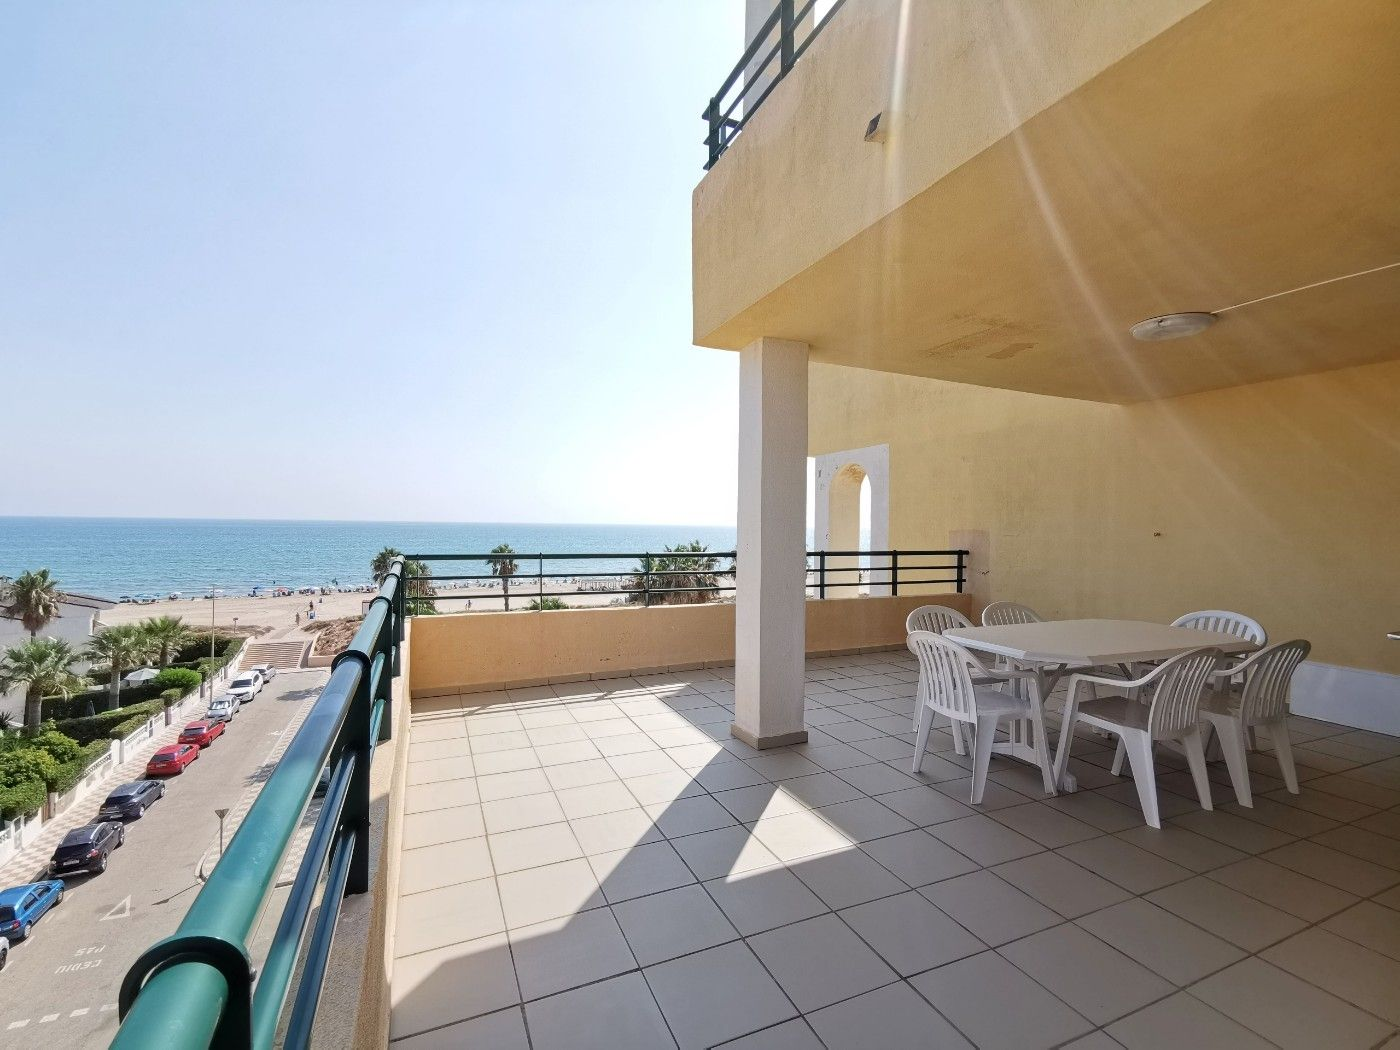 Appartement  Playa de xeraco. Apartamento con vistas al mar